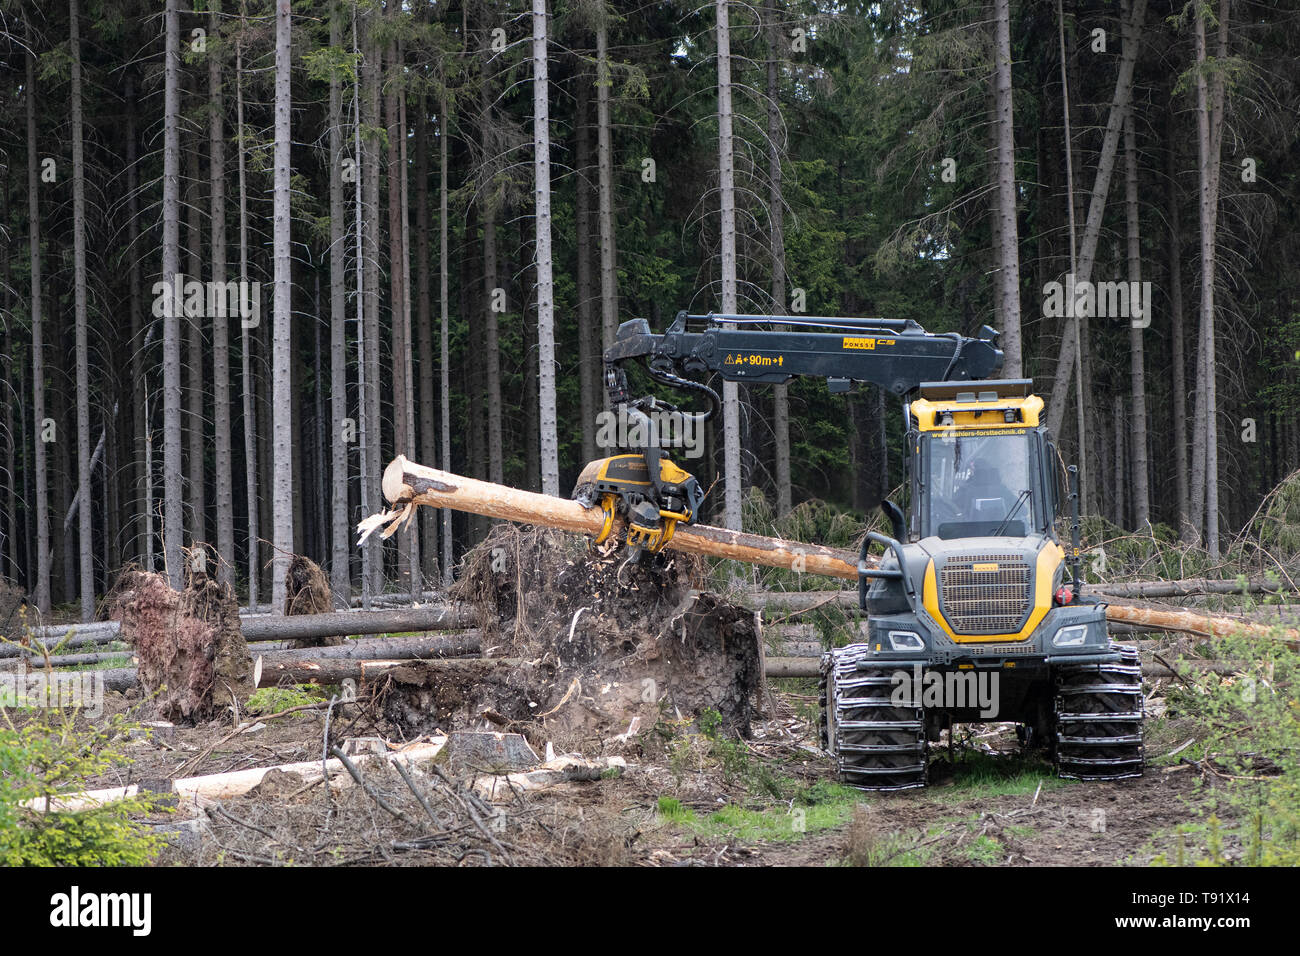 Sankt Ottilien, Germany. 16th May, 2019. A harvester (wood harvester) debarks a spruce trunk on a forest area in the Söhrewald that is severely affected by the windthrow. After the drought of 2018, trees are weakened and susceptible to bark beetle infestation. Credit: Swen Pförtner/dpa/Alamy Live News - Stock Image